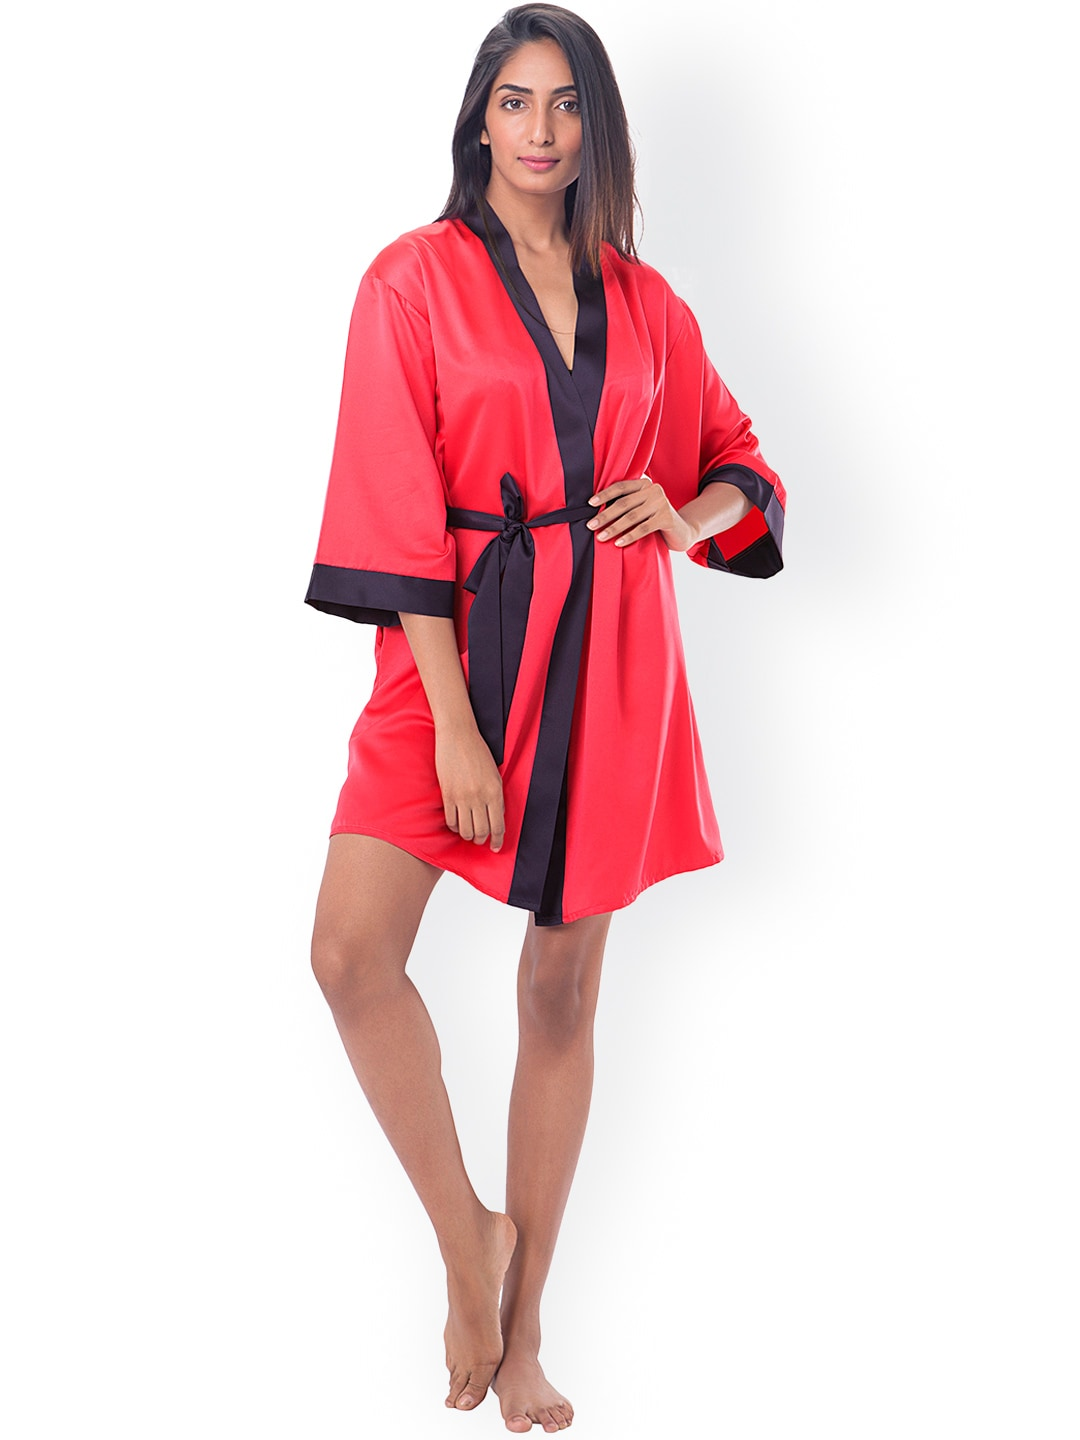 Prettysecrets Robe - Buy Prettysecrets Robe online in India d3b2424b3